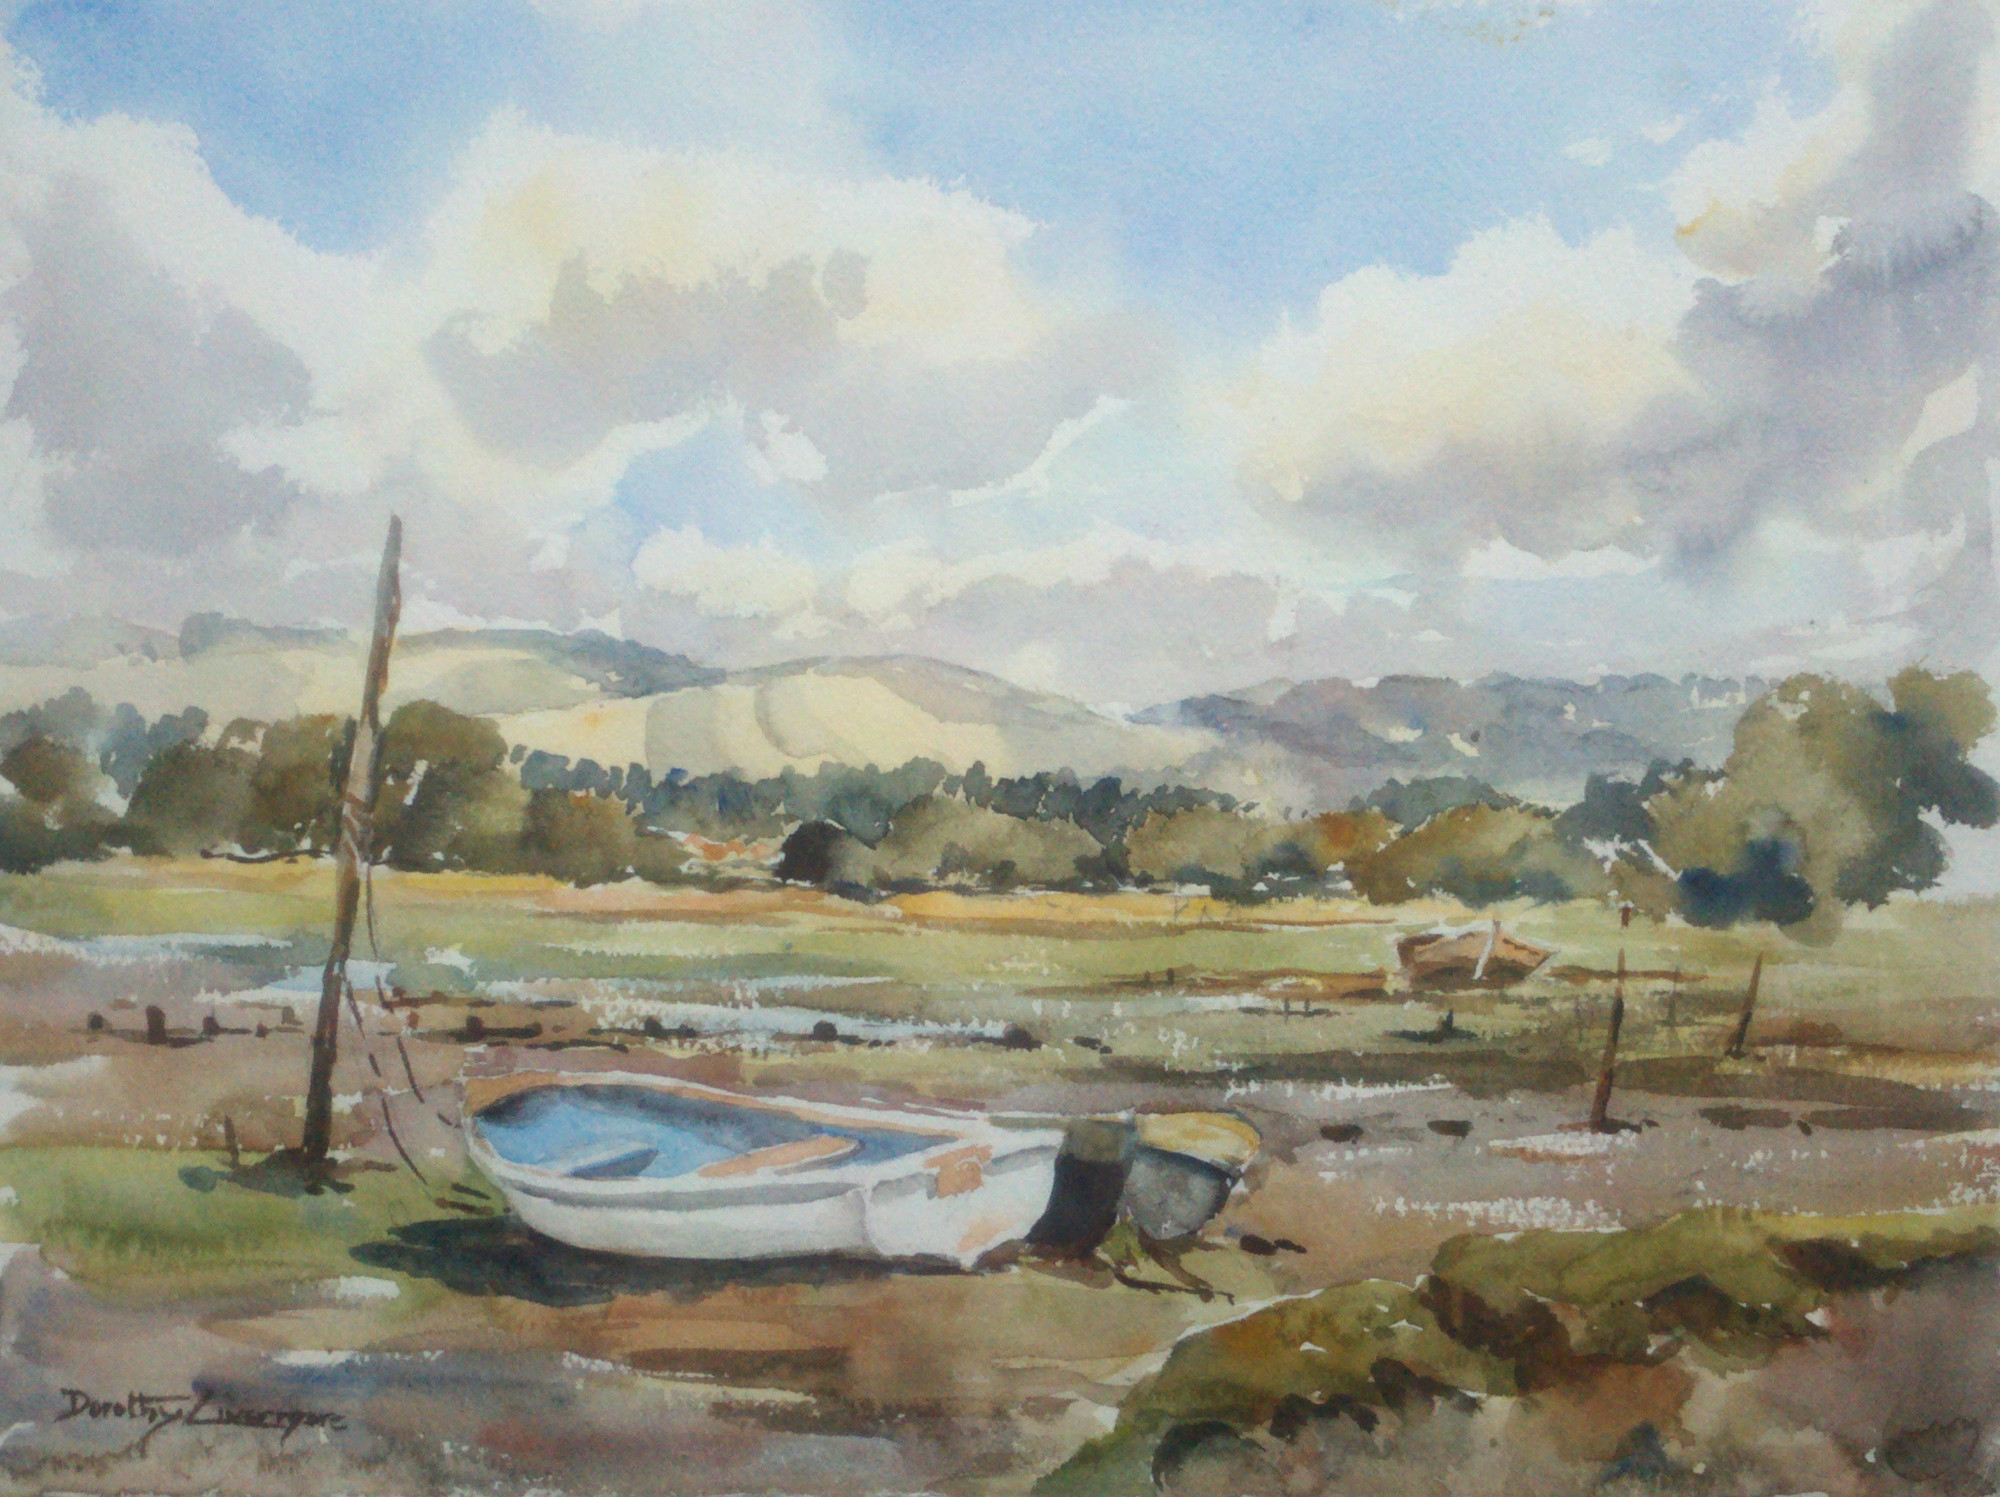 """Boats on the                     sand"", Dorothy Livermore Bishop"